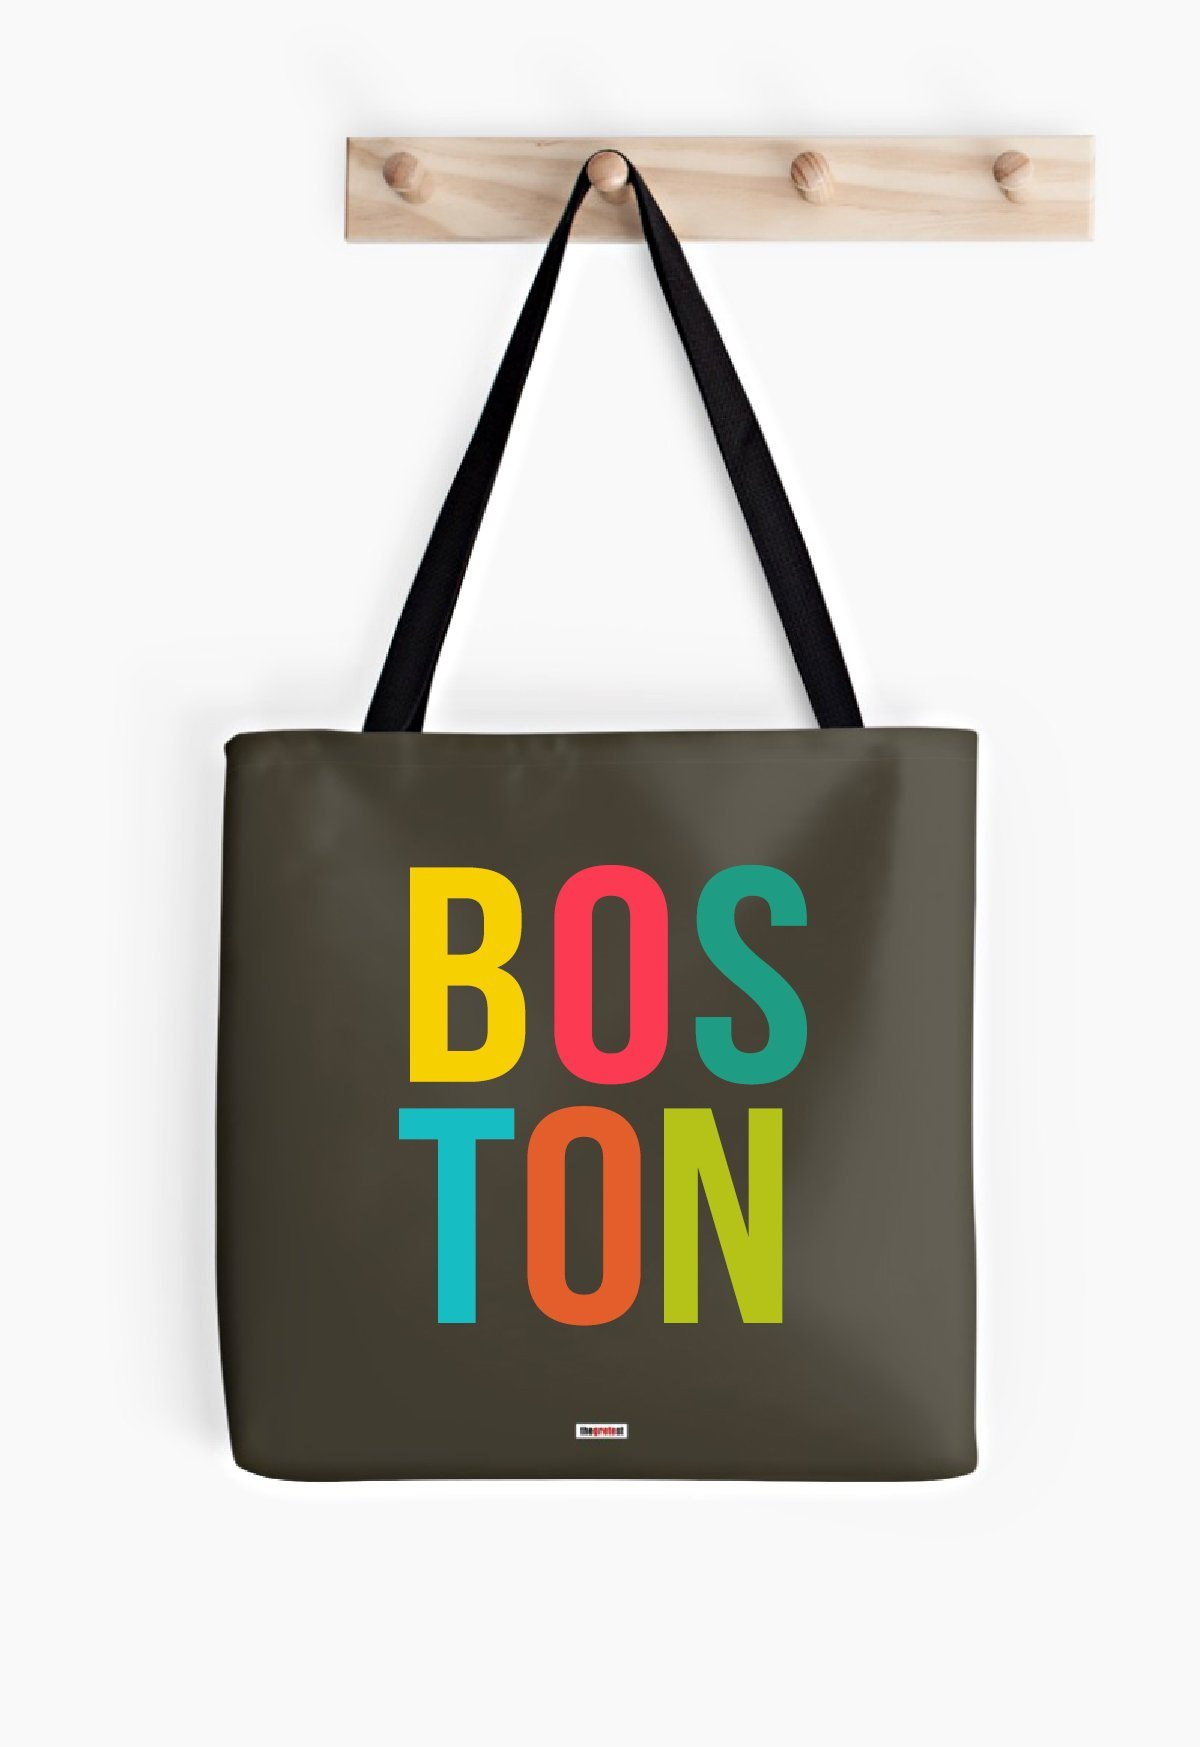 Boston Tote bag - Boston bag-TheGretest